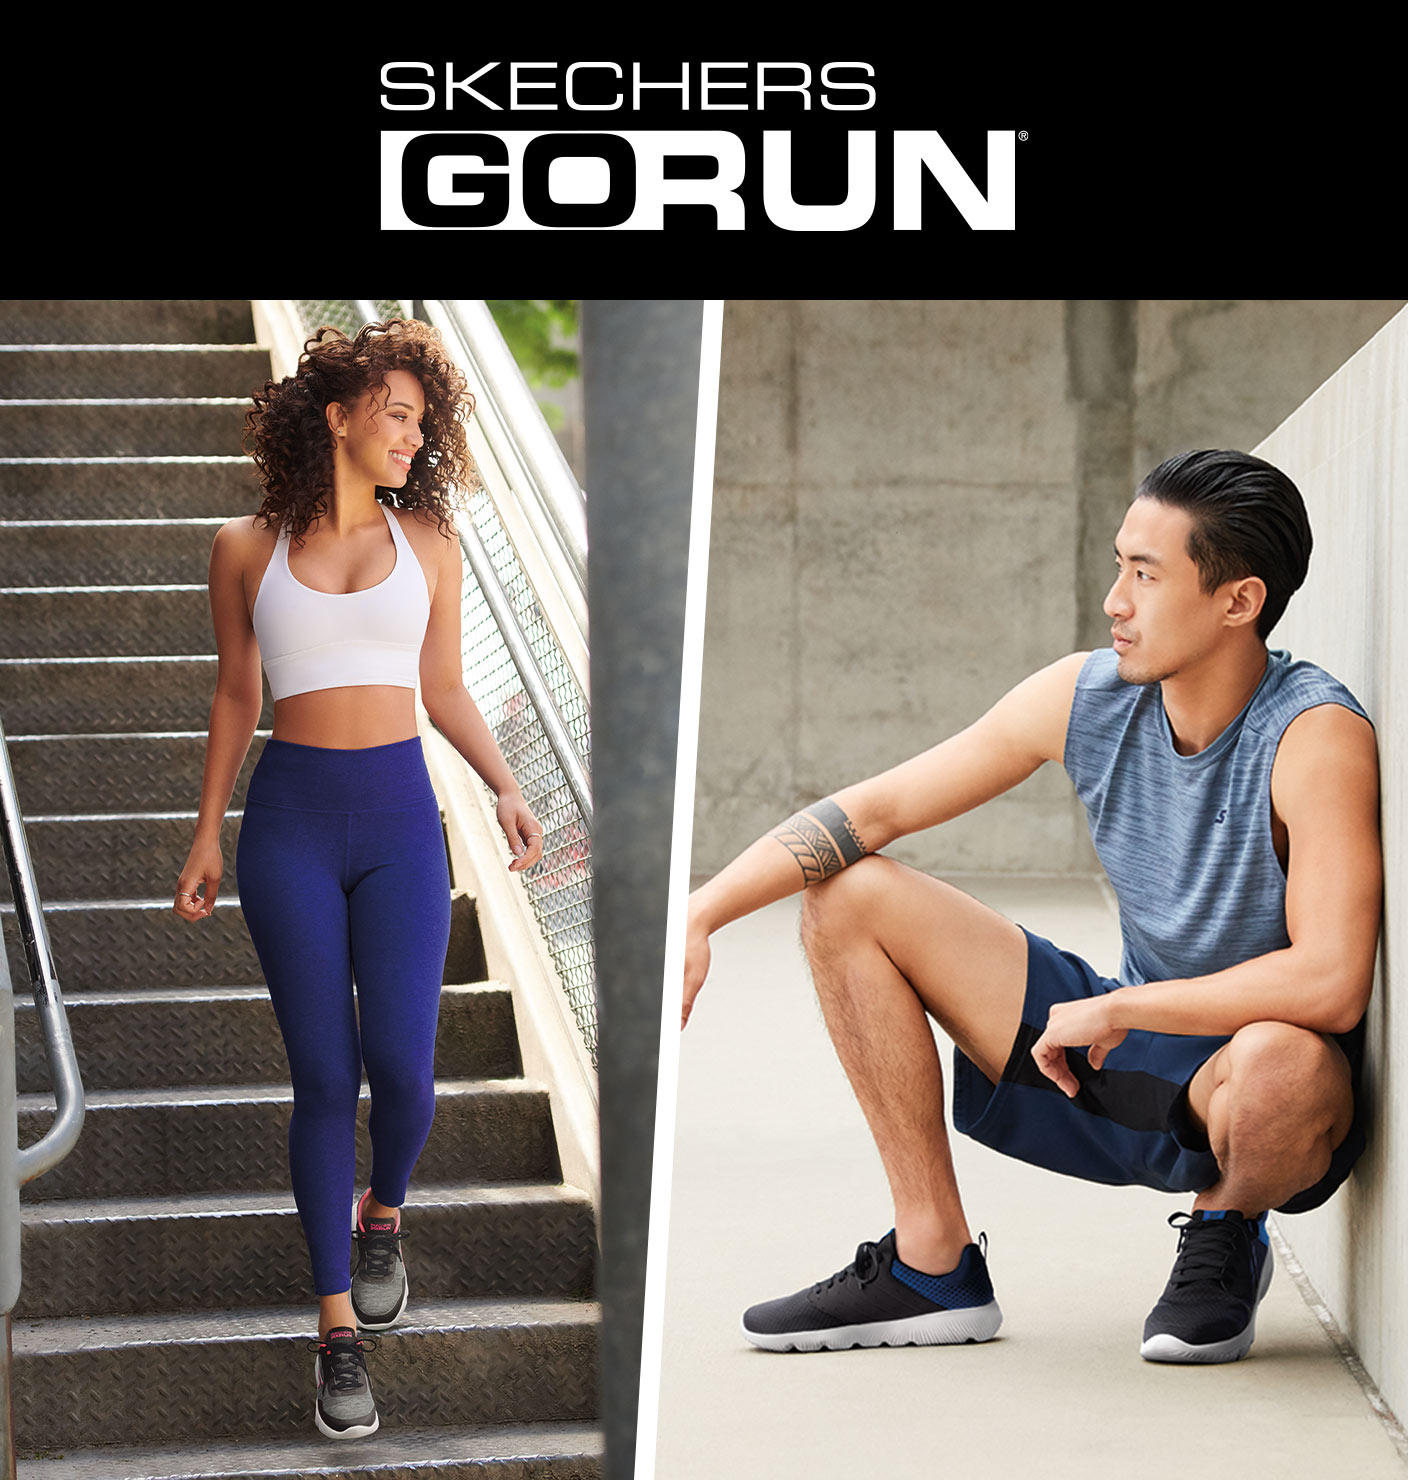 Get the latest in running style and technology with the new collection of Skechers GOrun shoes.  Well cushioned runners from stabiilty to lightweight designed for training runs, fitness running and long distances with advanced comfort including new Hyper Burst shoes.